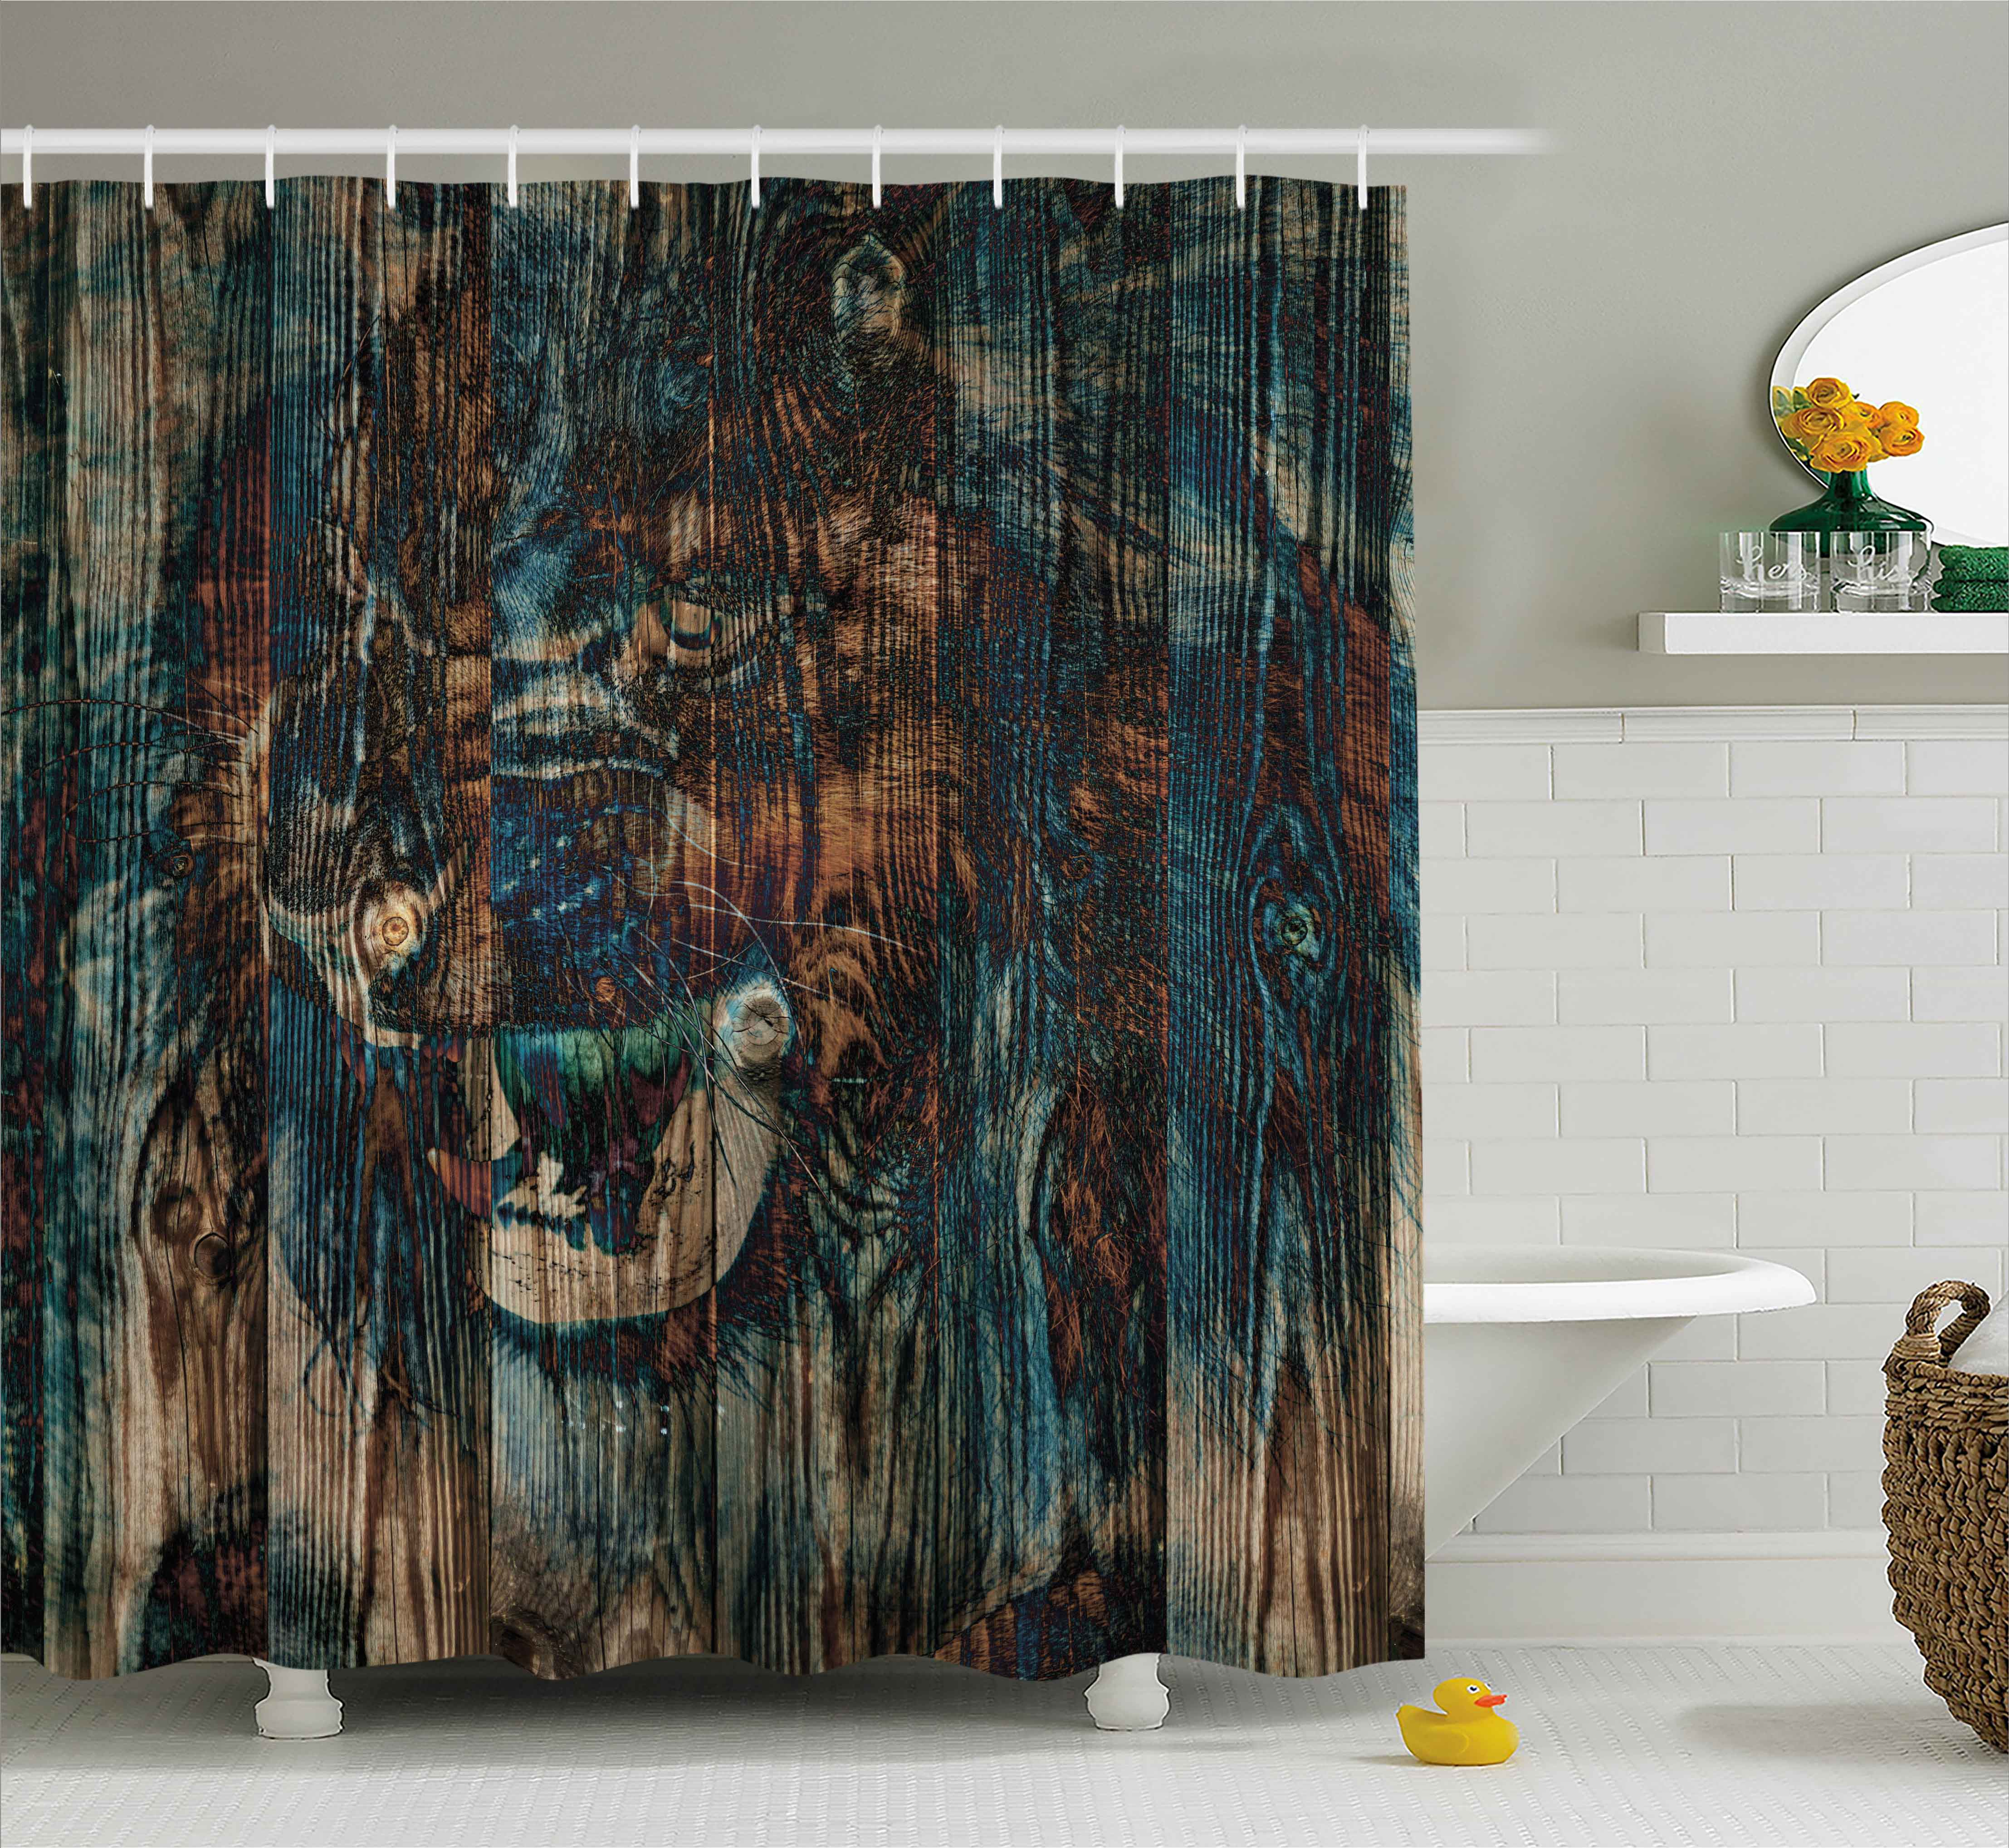 Exceptionnel Safari Decor Shower Curtain, Wild African Animal Big Cat Lion Carved On  Grunge Wooden Board